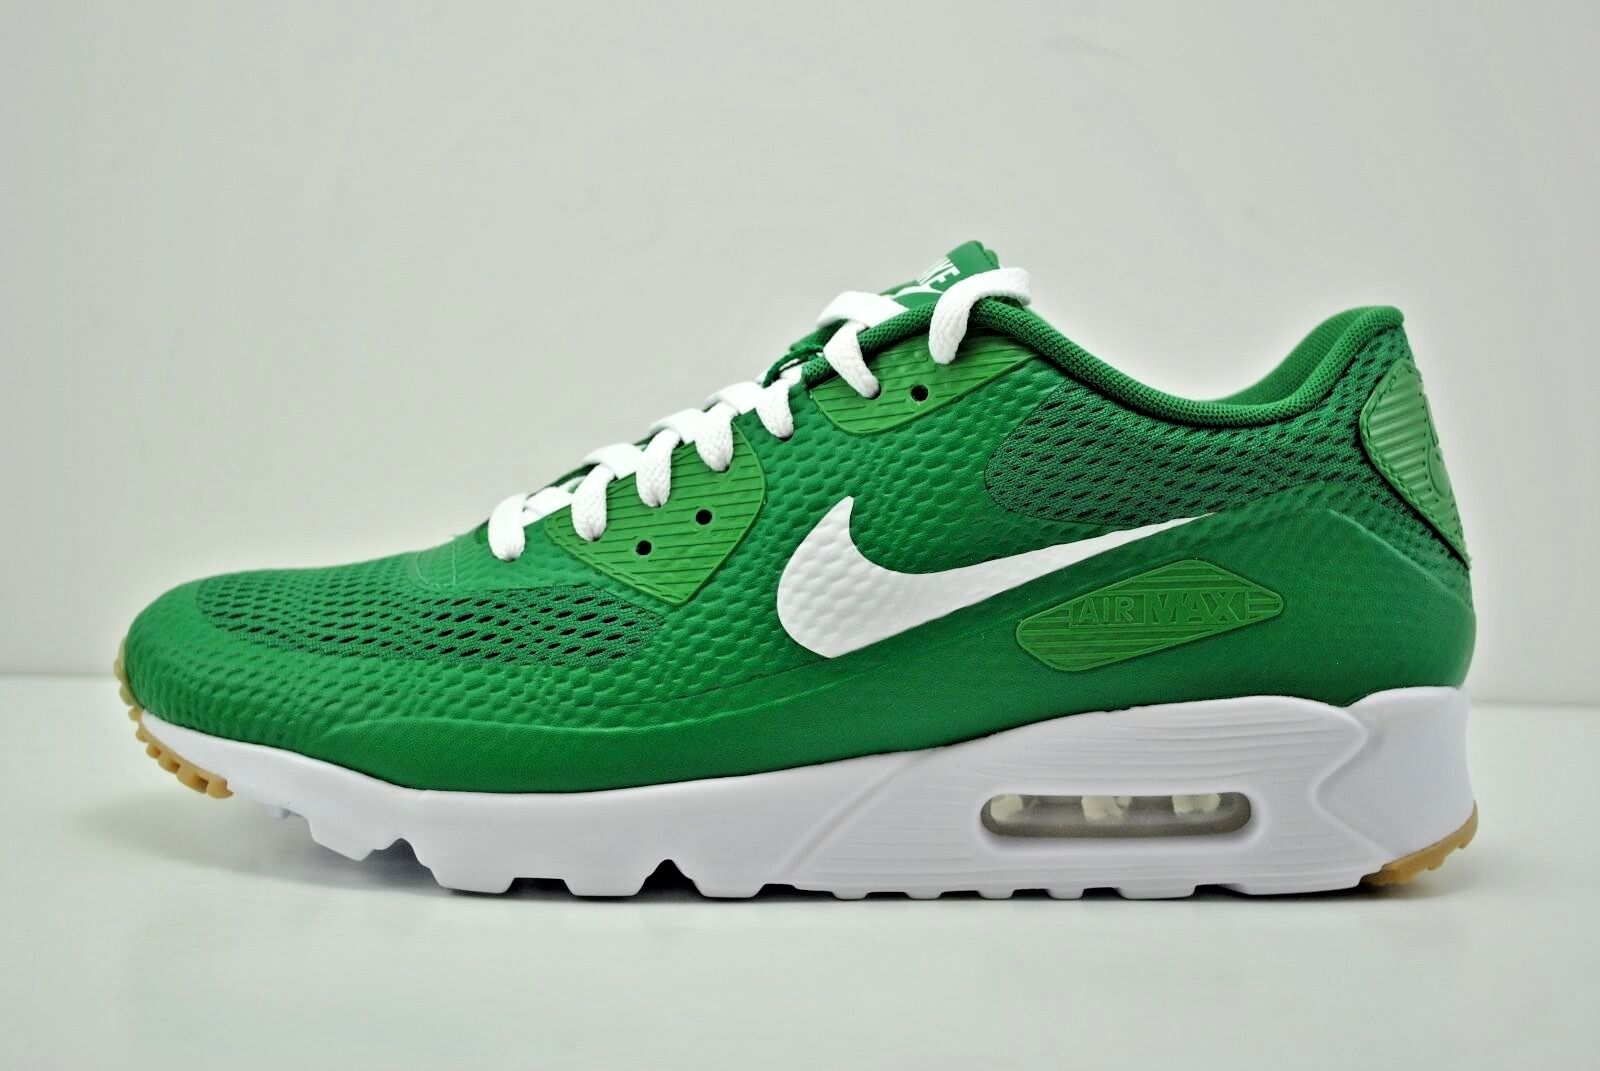 quality design 1b681 e0c43 70%OFF Men Nike Air Max 90 Ultra Essential Running Shoes Size 12 Green White